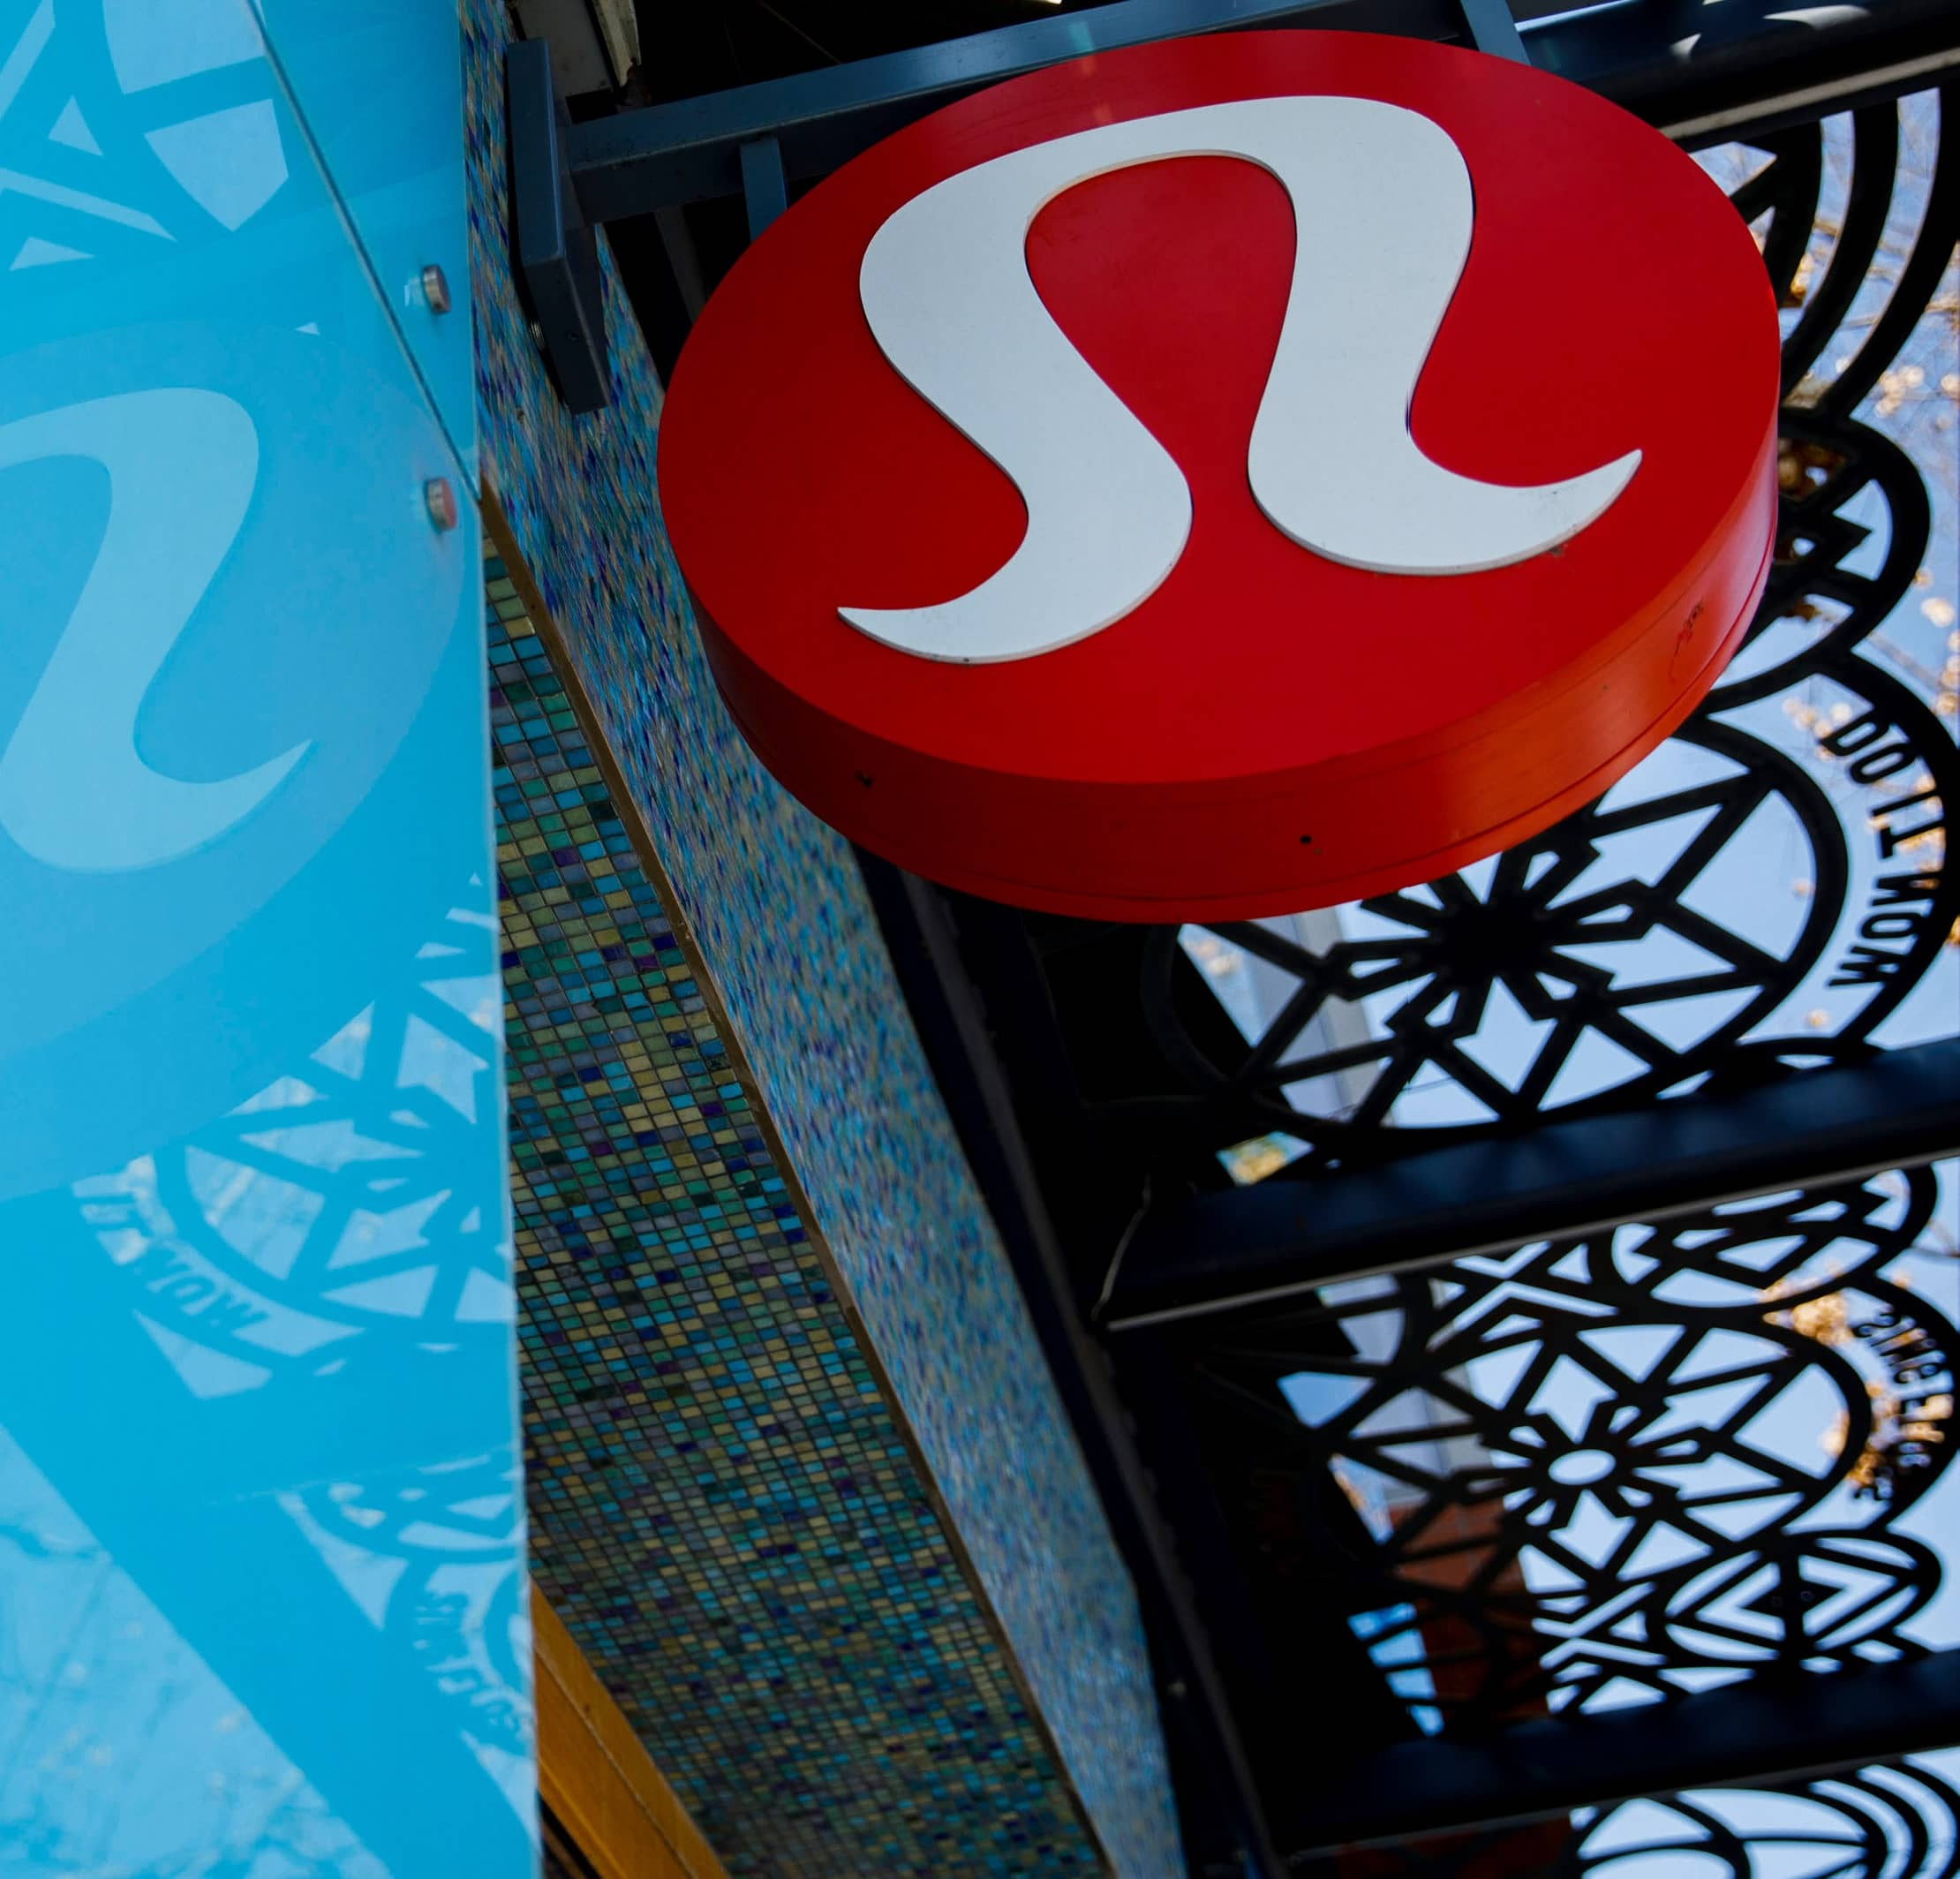 LULULEMON BUYS AT-HOME EXERCISE STARTUP FOR $500 MILLION